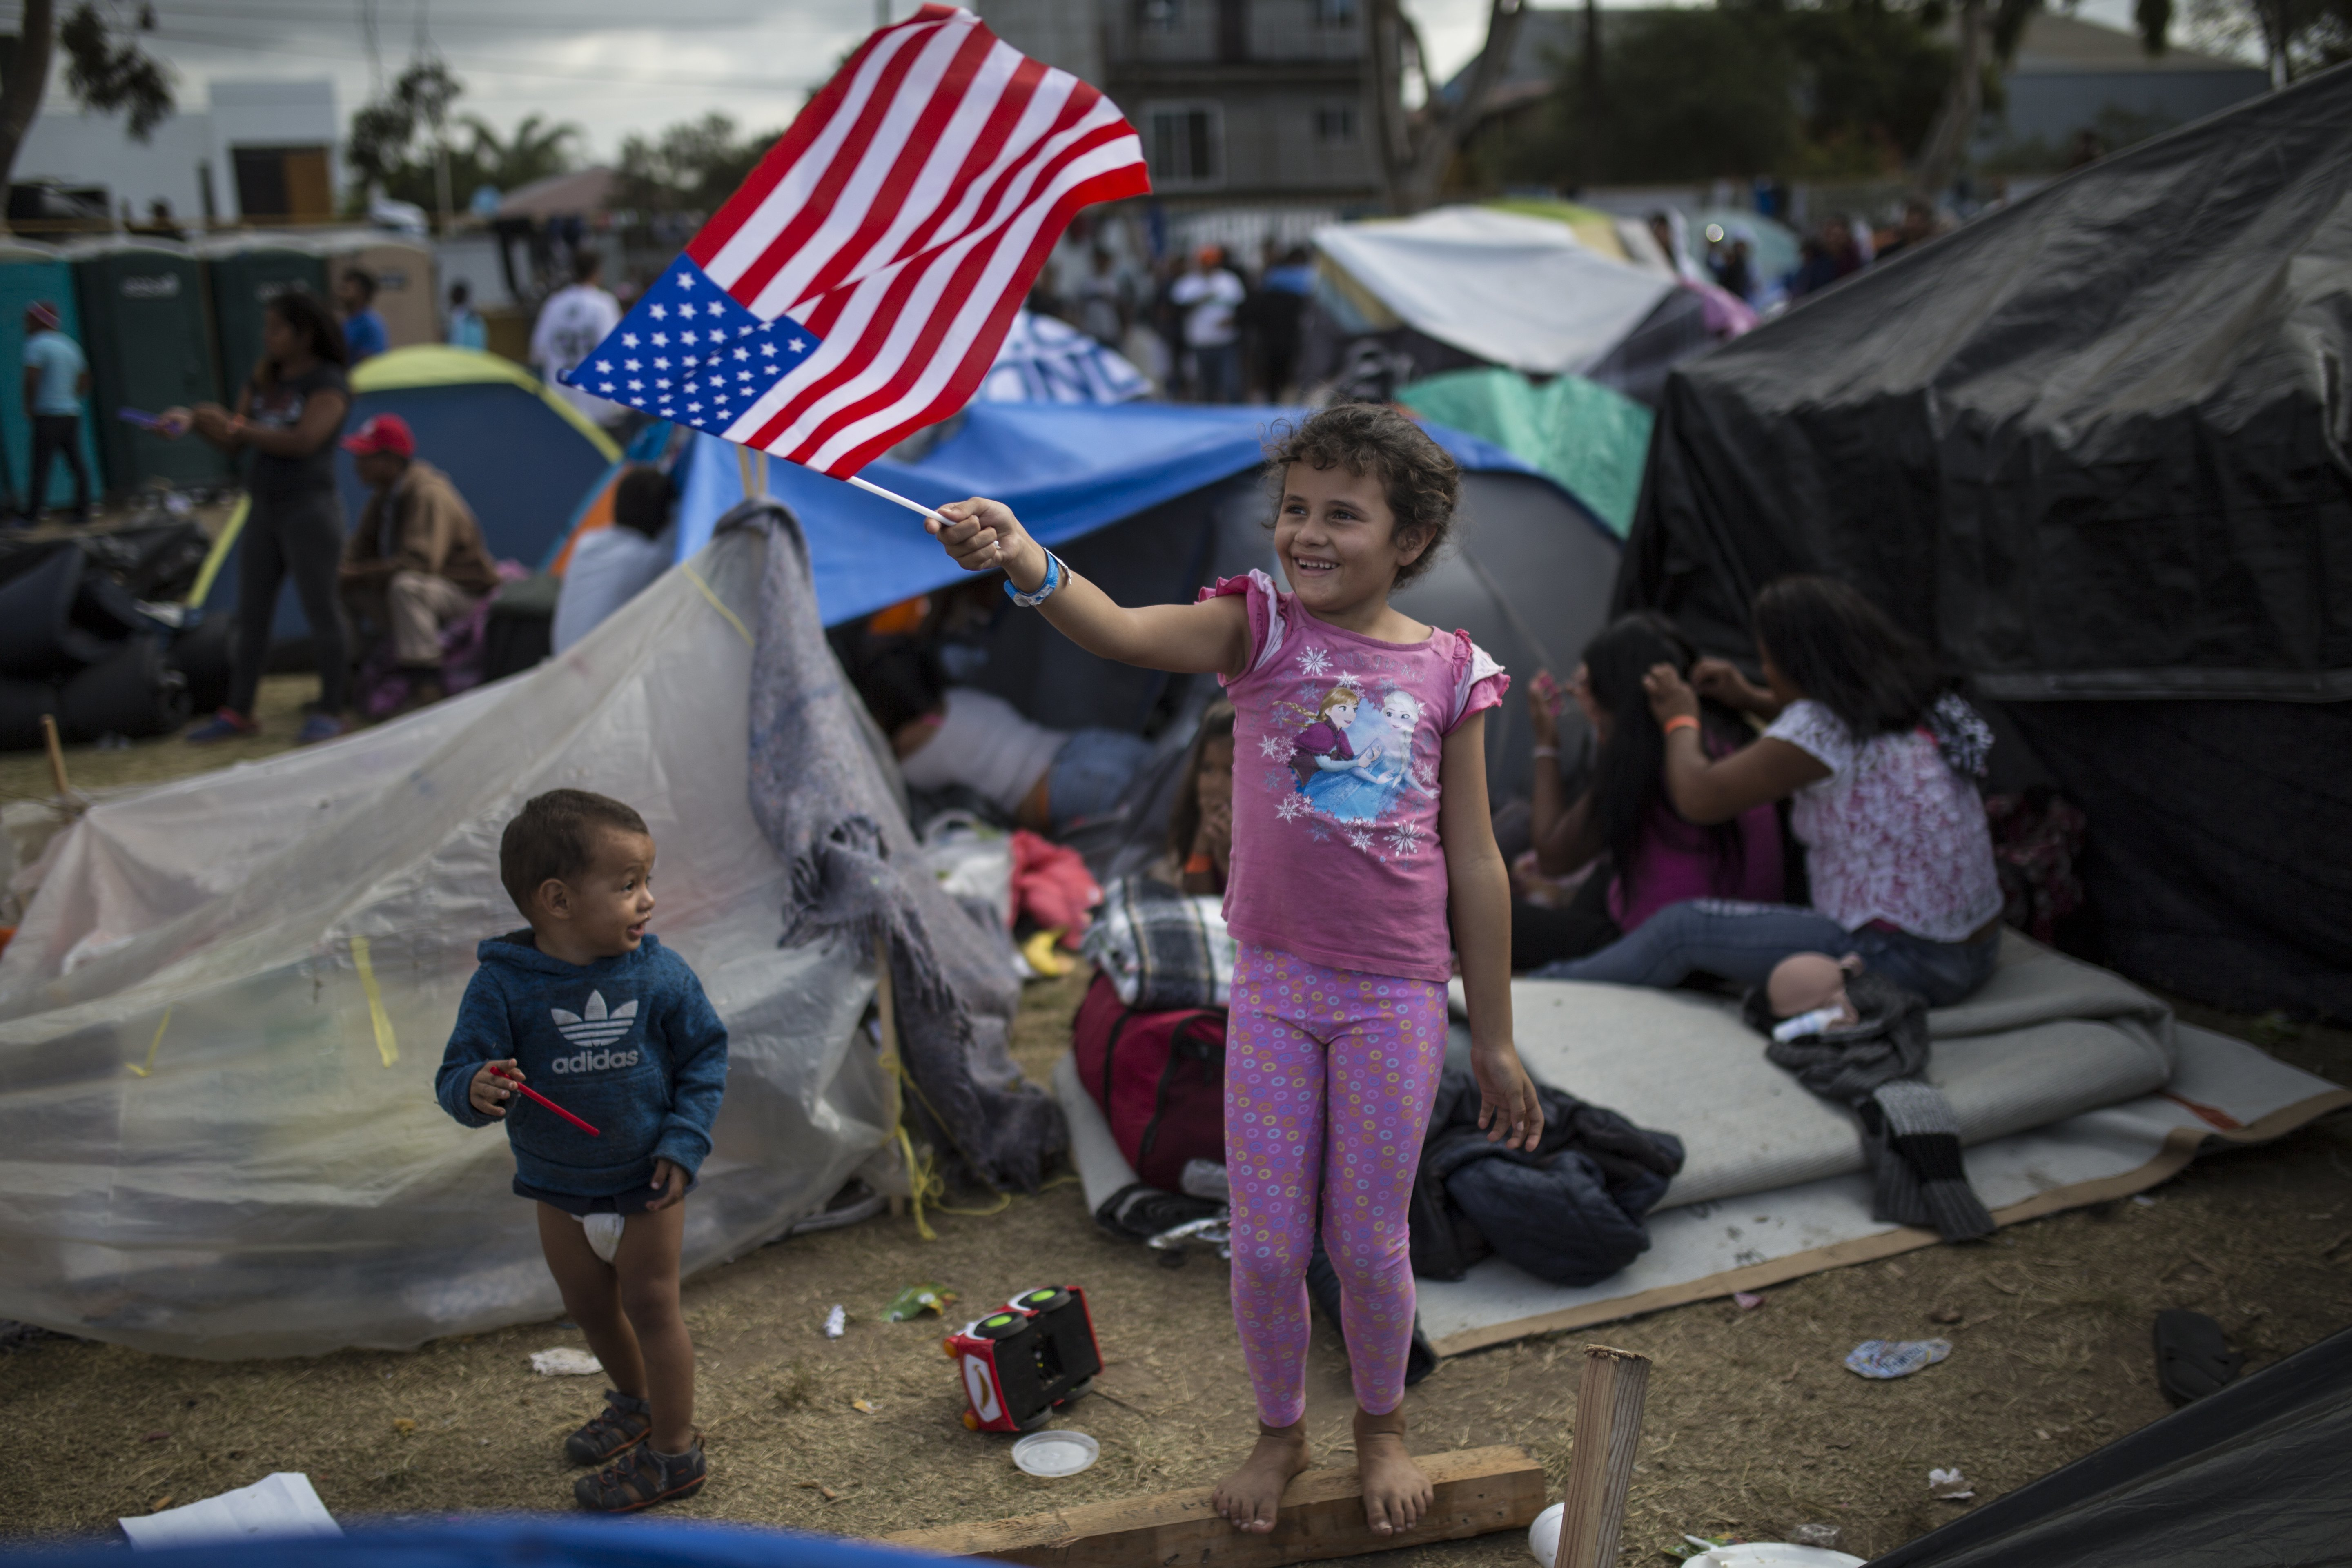 Seven-year-old Honduran migrant Genesis Belen Mejia Flores waves an American flag at U.S. border control helicopters flying overhead near the Benito Juarez Sports Center serving as a temporary shelter for Central American migrants, in Tijuana, Mexico...